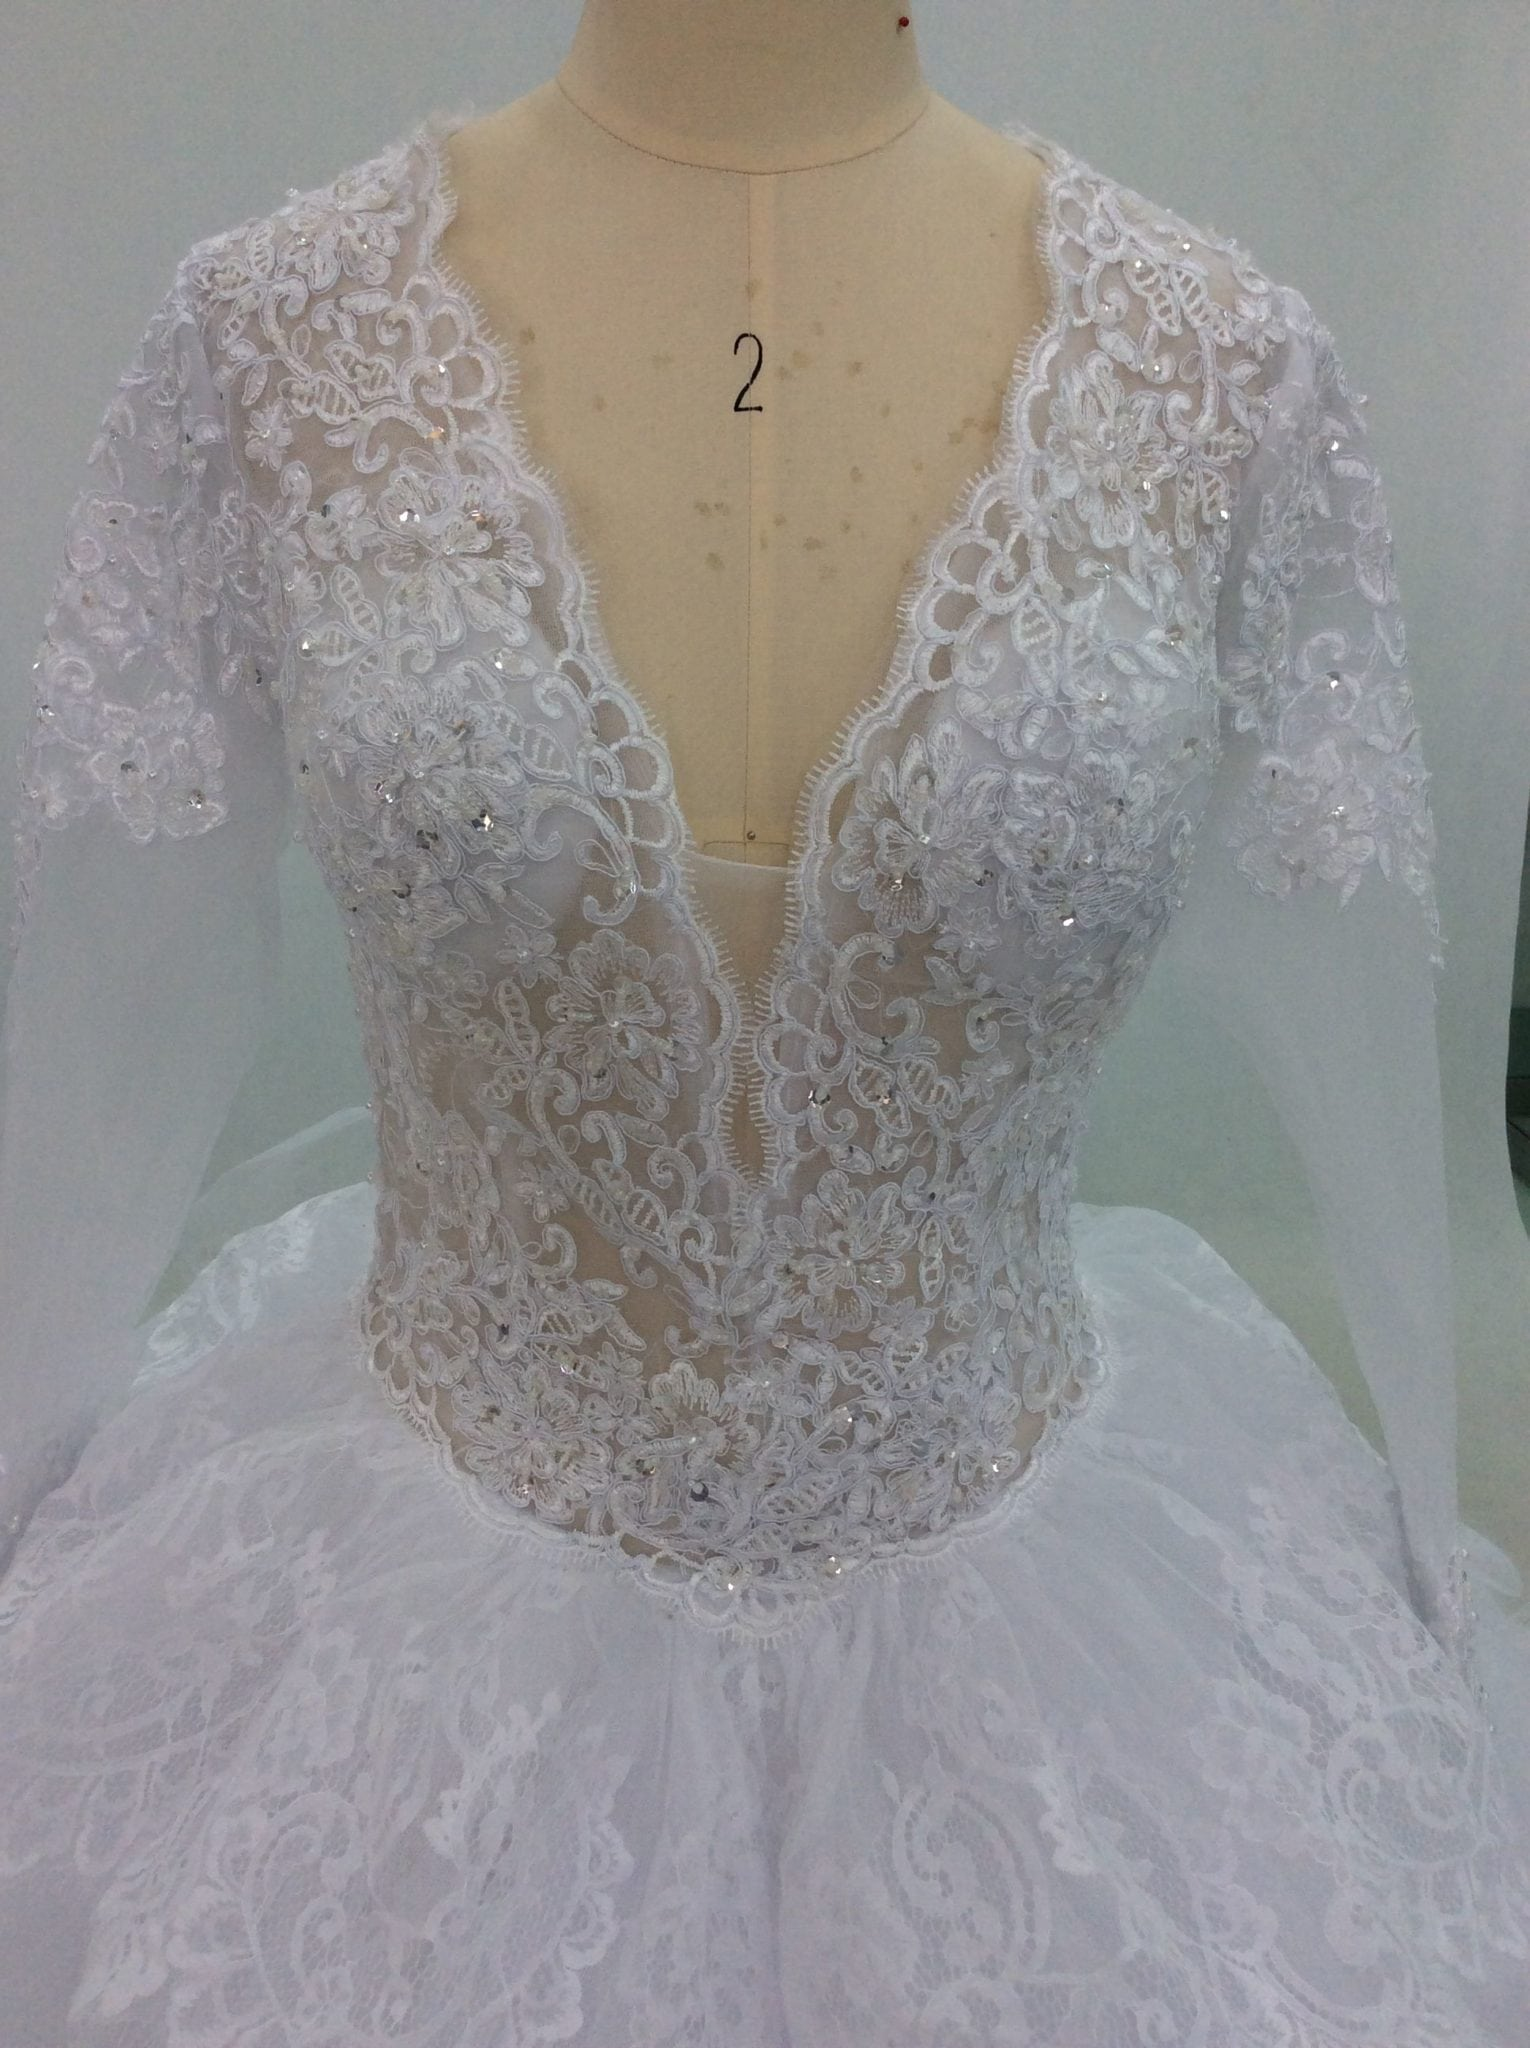 70a39c644b Style #C2018-Carroll V-neck lace wedding dresses from Darius Cordell